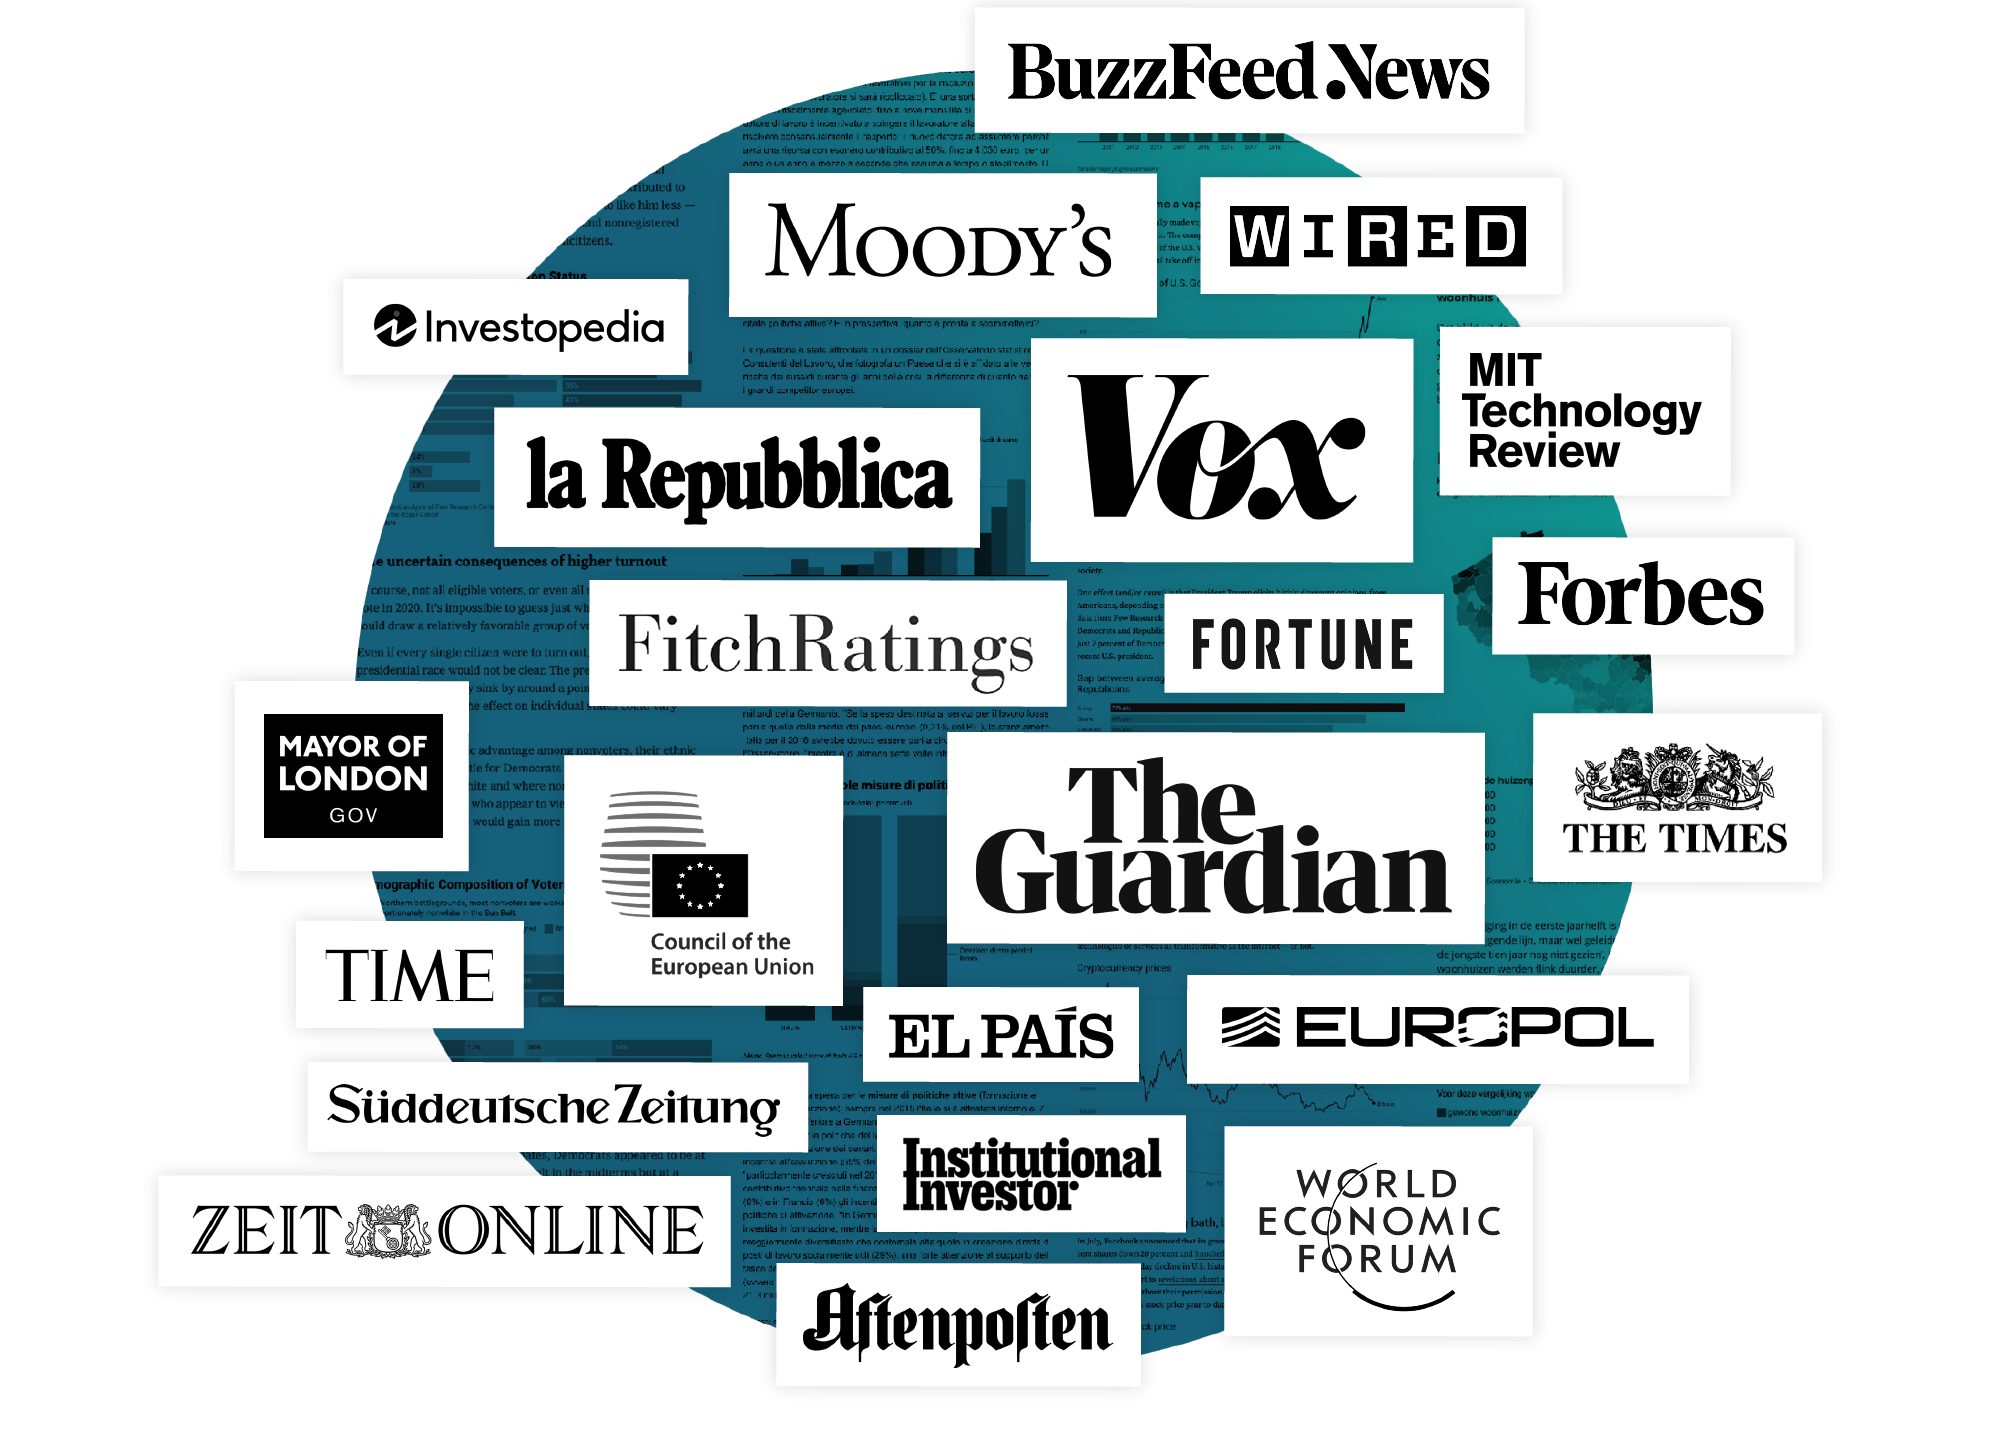 Logo wall showing companies that use Datavis, like BuzzFeed News, Vox, Guardian, Fitch Ratings, Moodys, Forbes, The Times